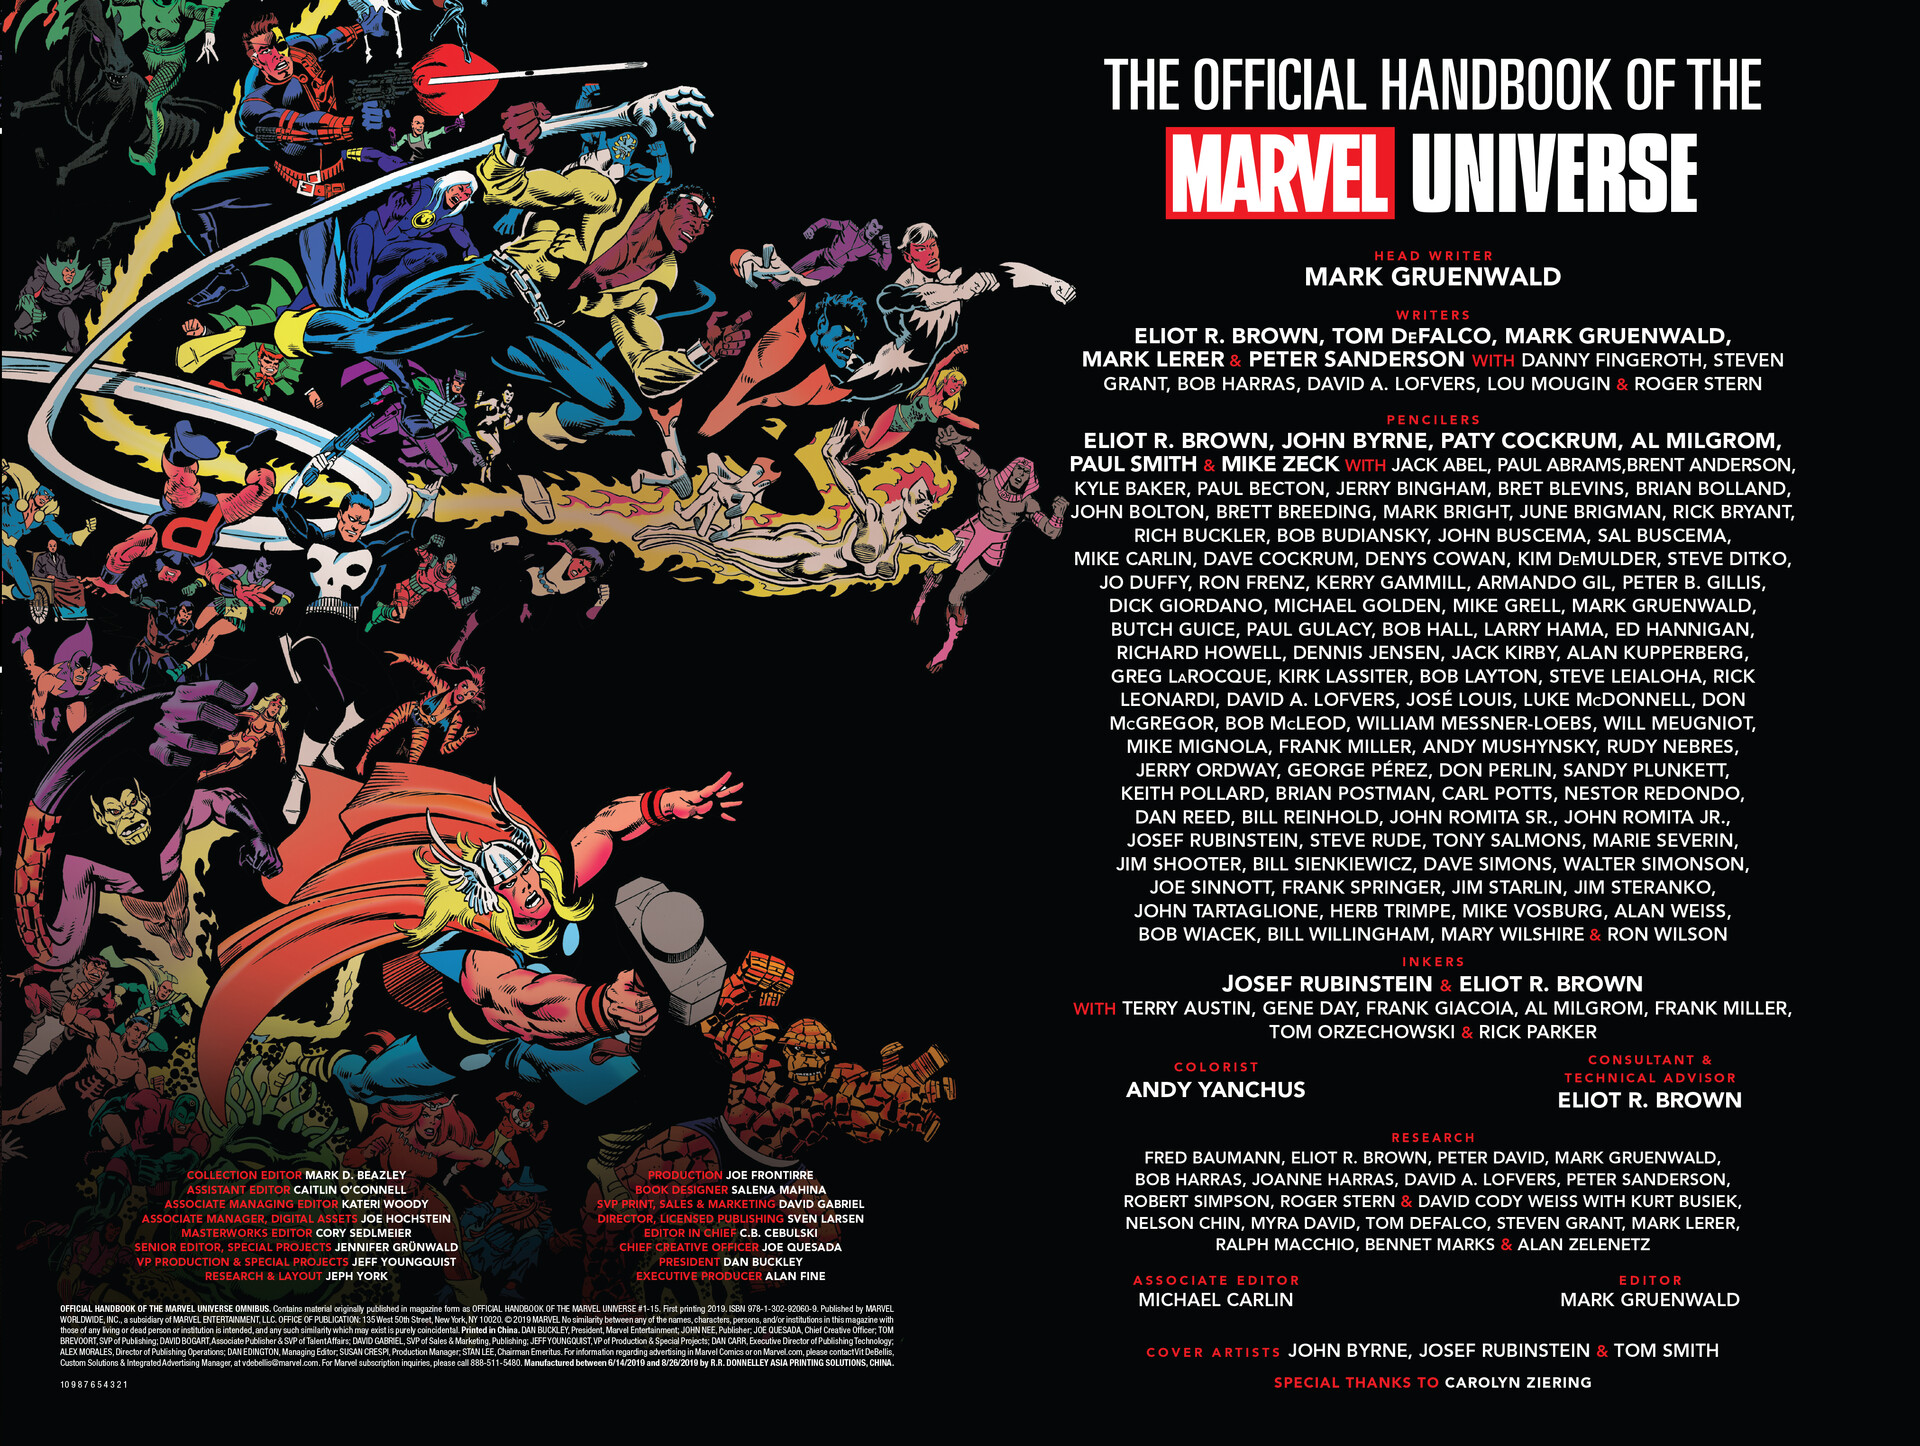 The Official Handbook of the Marvel Universe credits page design